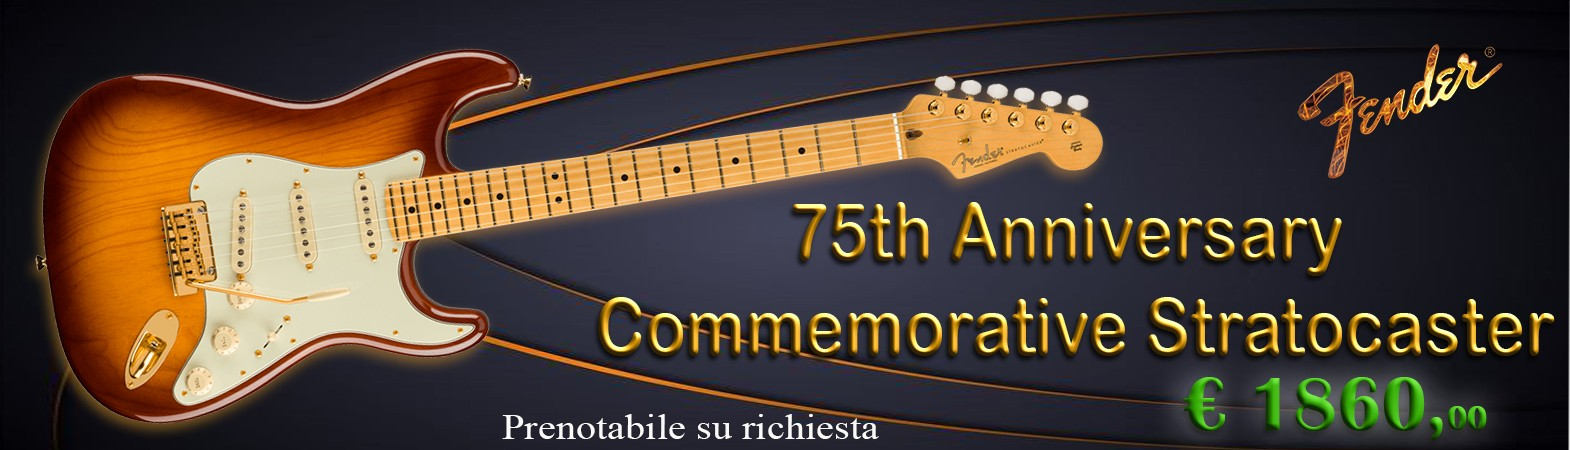 75TH ANNIVERSARY COMMEMORATIVE STRATOCASTER